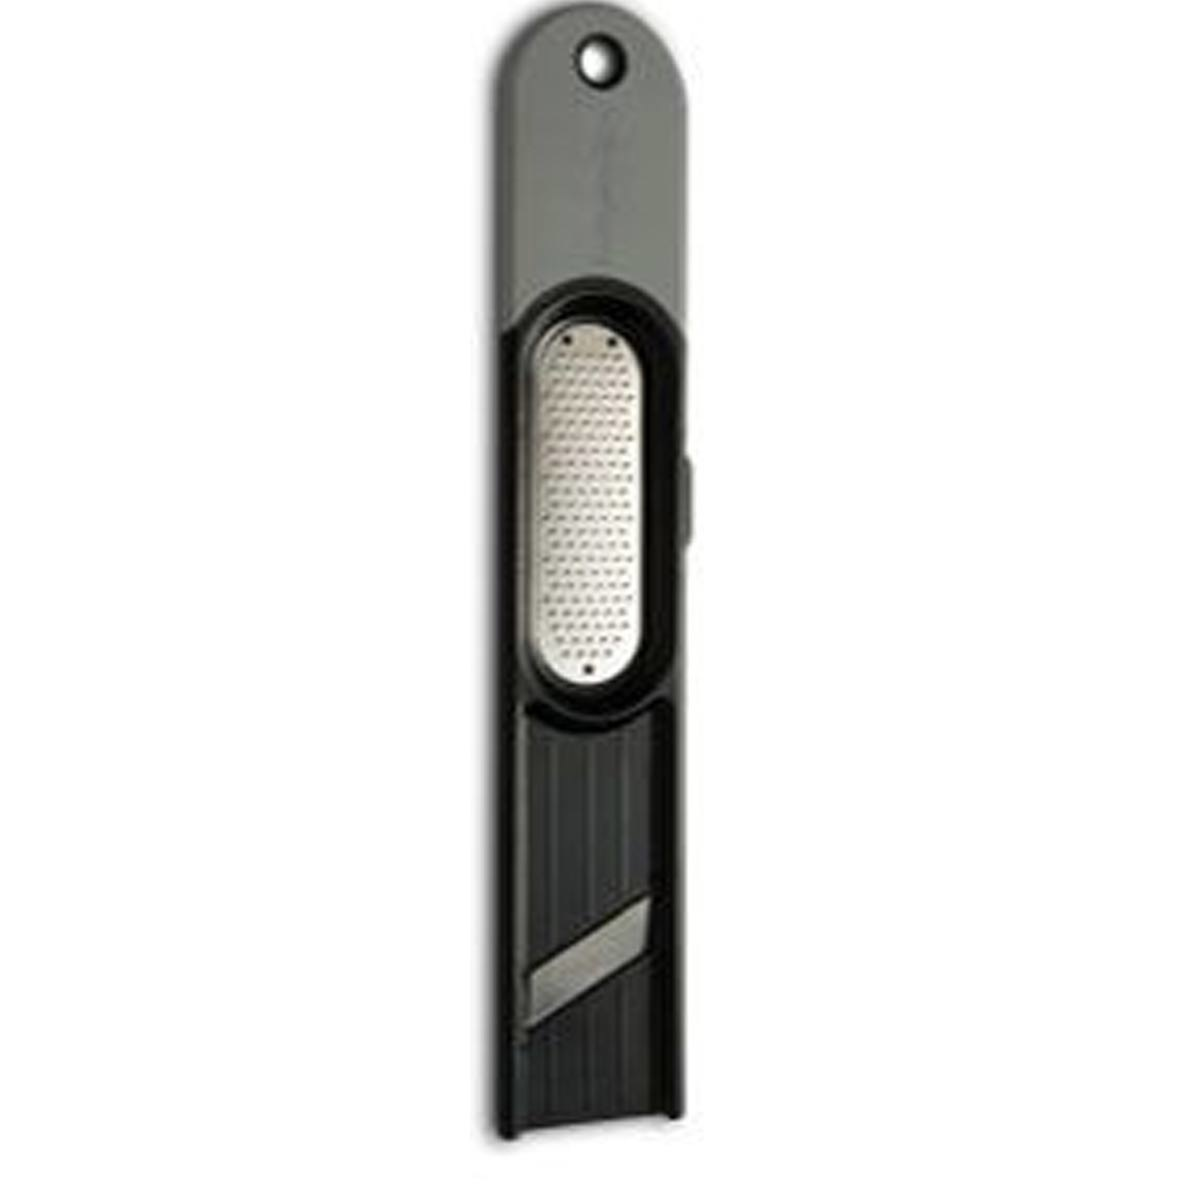 Microplane 3-IN-1 Ginger Grater Tool - Black & Grey